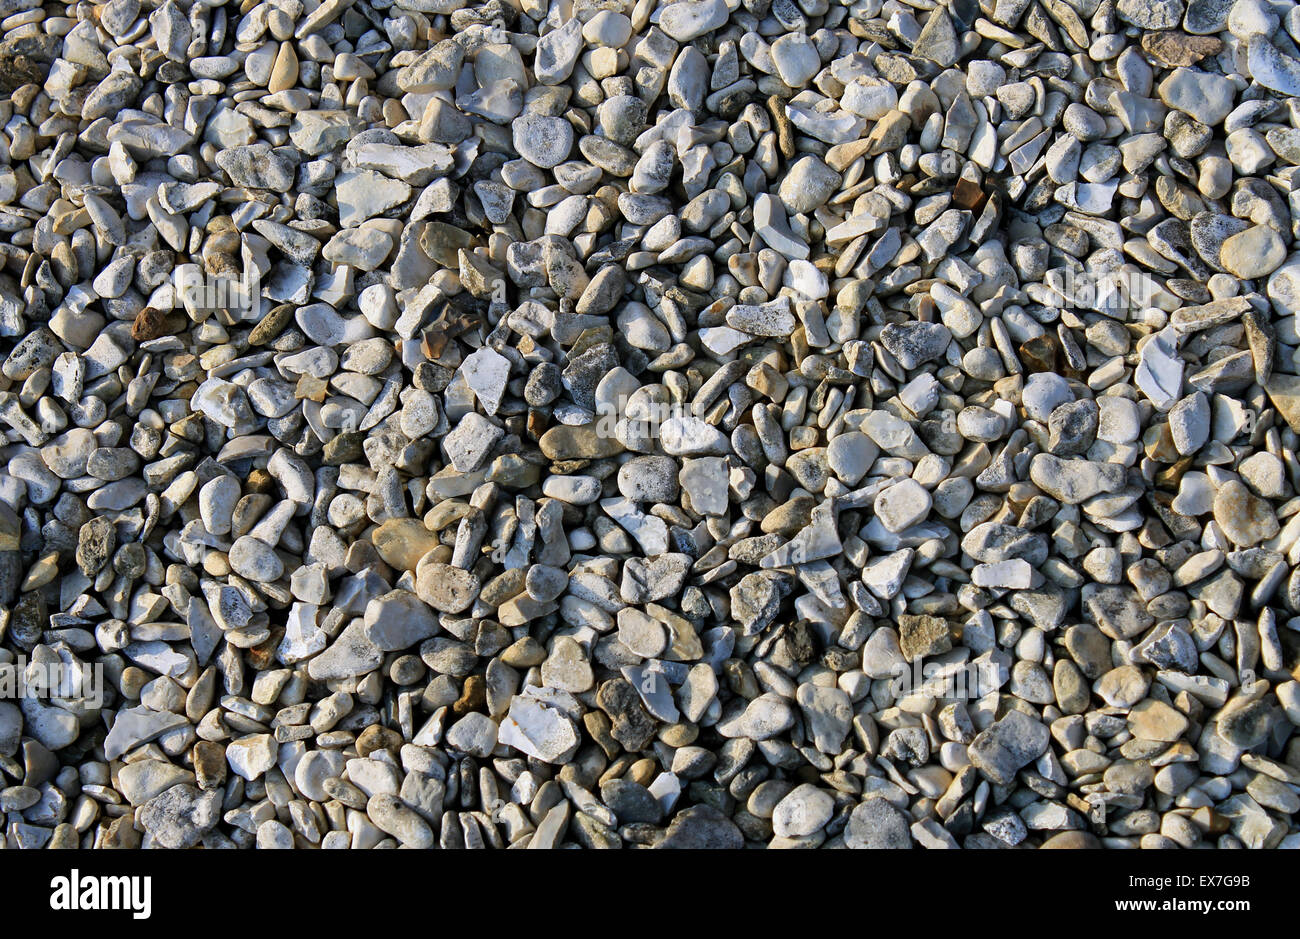 Abstract pebble or shingle background. - Stock Image